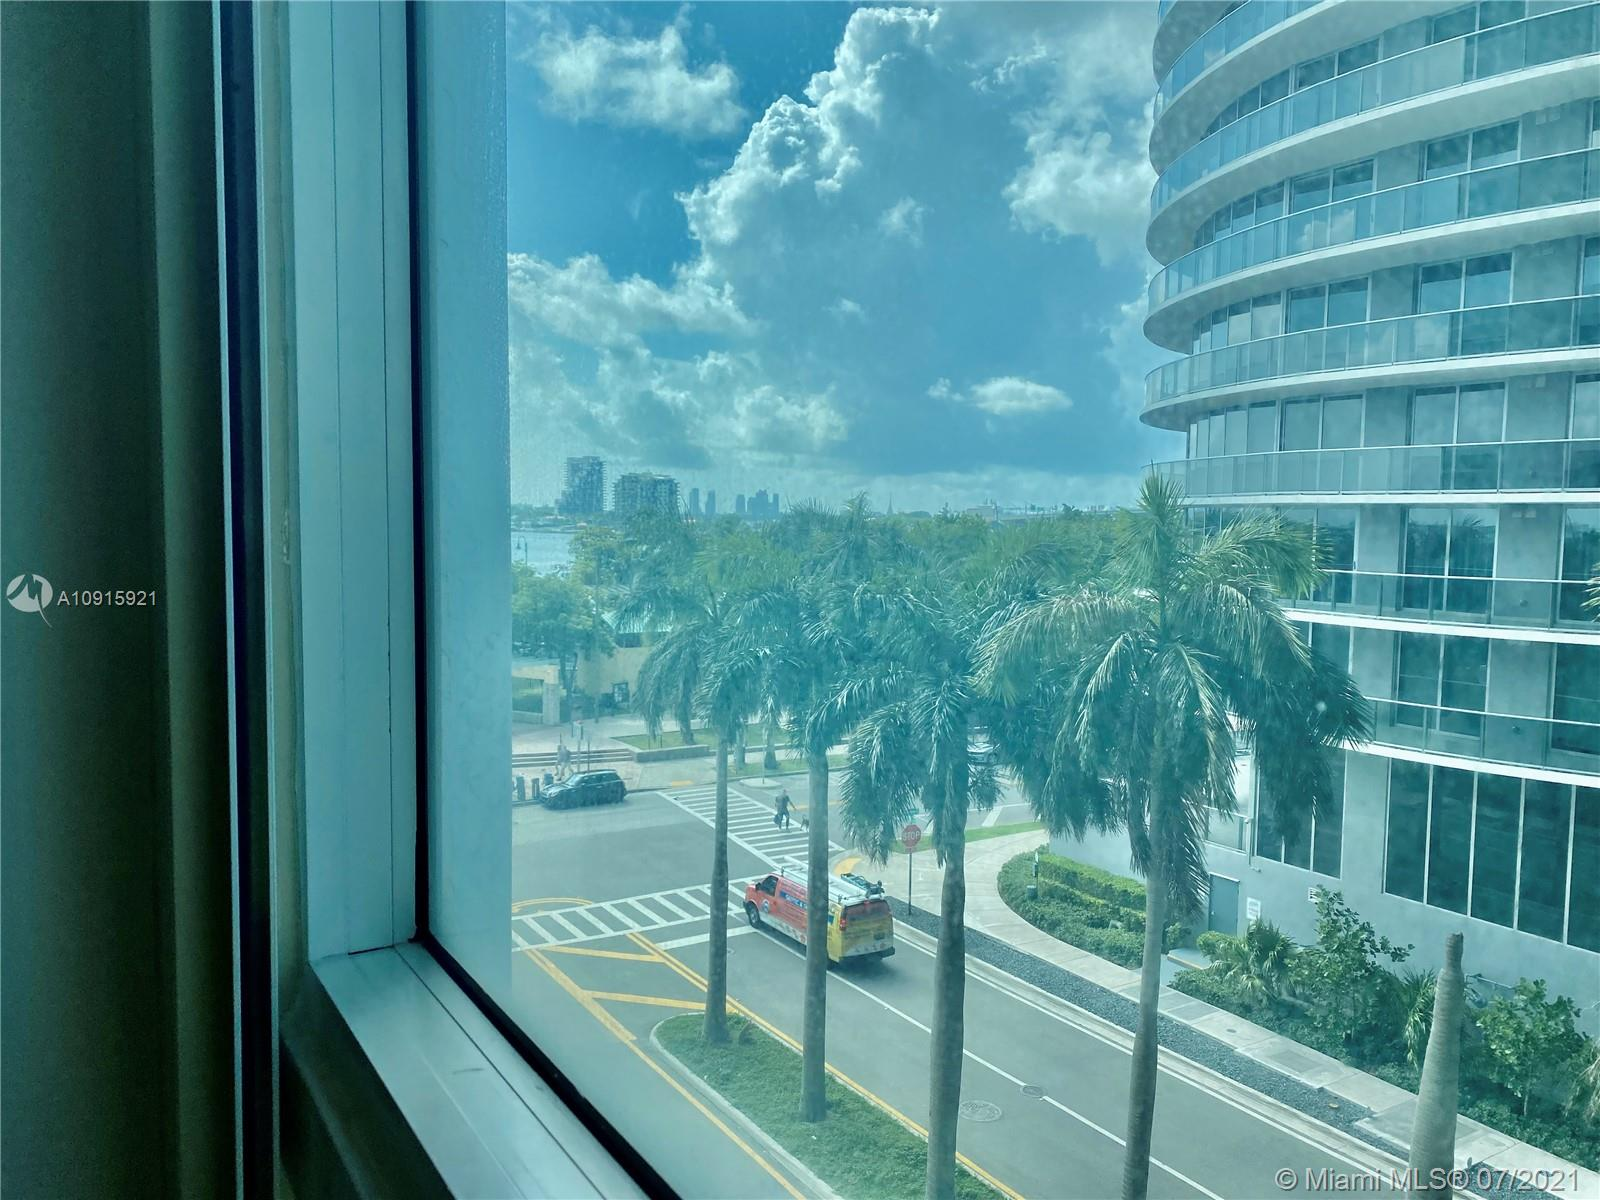 SPECTACULAR HUGE 1249 SQ FT LIVE/WORK SPACE/LOFT 12FT CEILINGS W/IN CLOSED BEDROOM IN EDGEWATER AT THE 1800 .MAINTENANCE INCLUDES CABLE,INTERNET WATER &1 PARKING IN THE SAME FLOOR.BUY UNIT W/AS LITTLE AS 5% DOWN IF YOU QUALIFY.FULL SERVICE BUILDING.WALK TO PARK,SHOPS,PUBLIX,BANKS,CAFES & SO MUCH MORE.5 MINUTES TO SOUTH BEACH, BRICKELL, DOWNTOWN, AAA,THE PERFORMING ARTS CENTER,MIDTOWN, DESIGN DISTRICT & EVERYTHING THAT IS HAPPENING IN NEW URBAN MIAMI.EASY TO SHOW CALL TODAY.